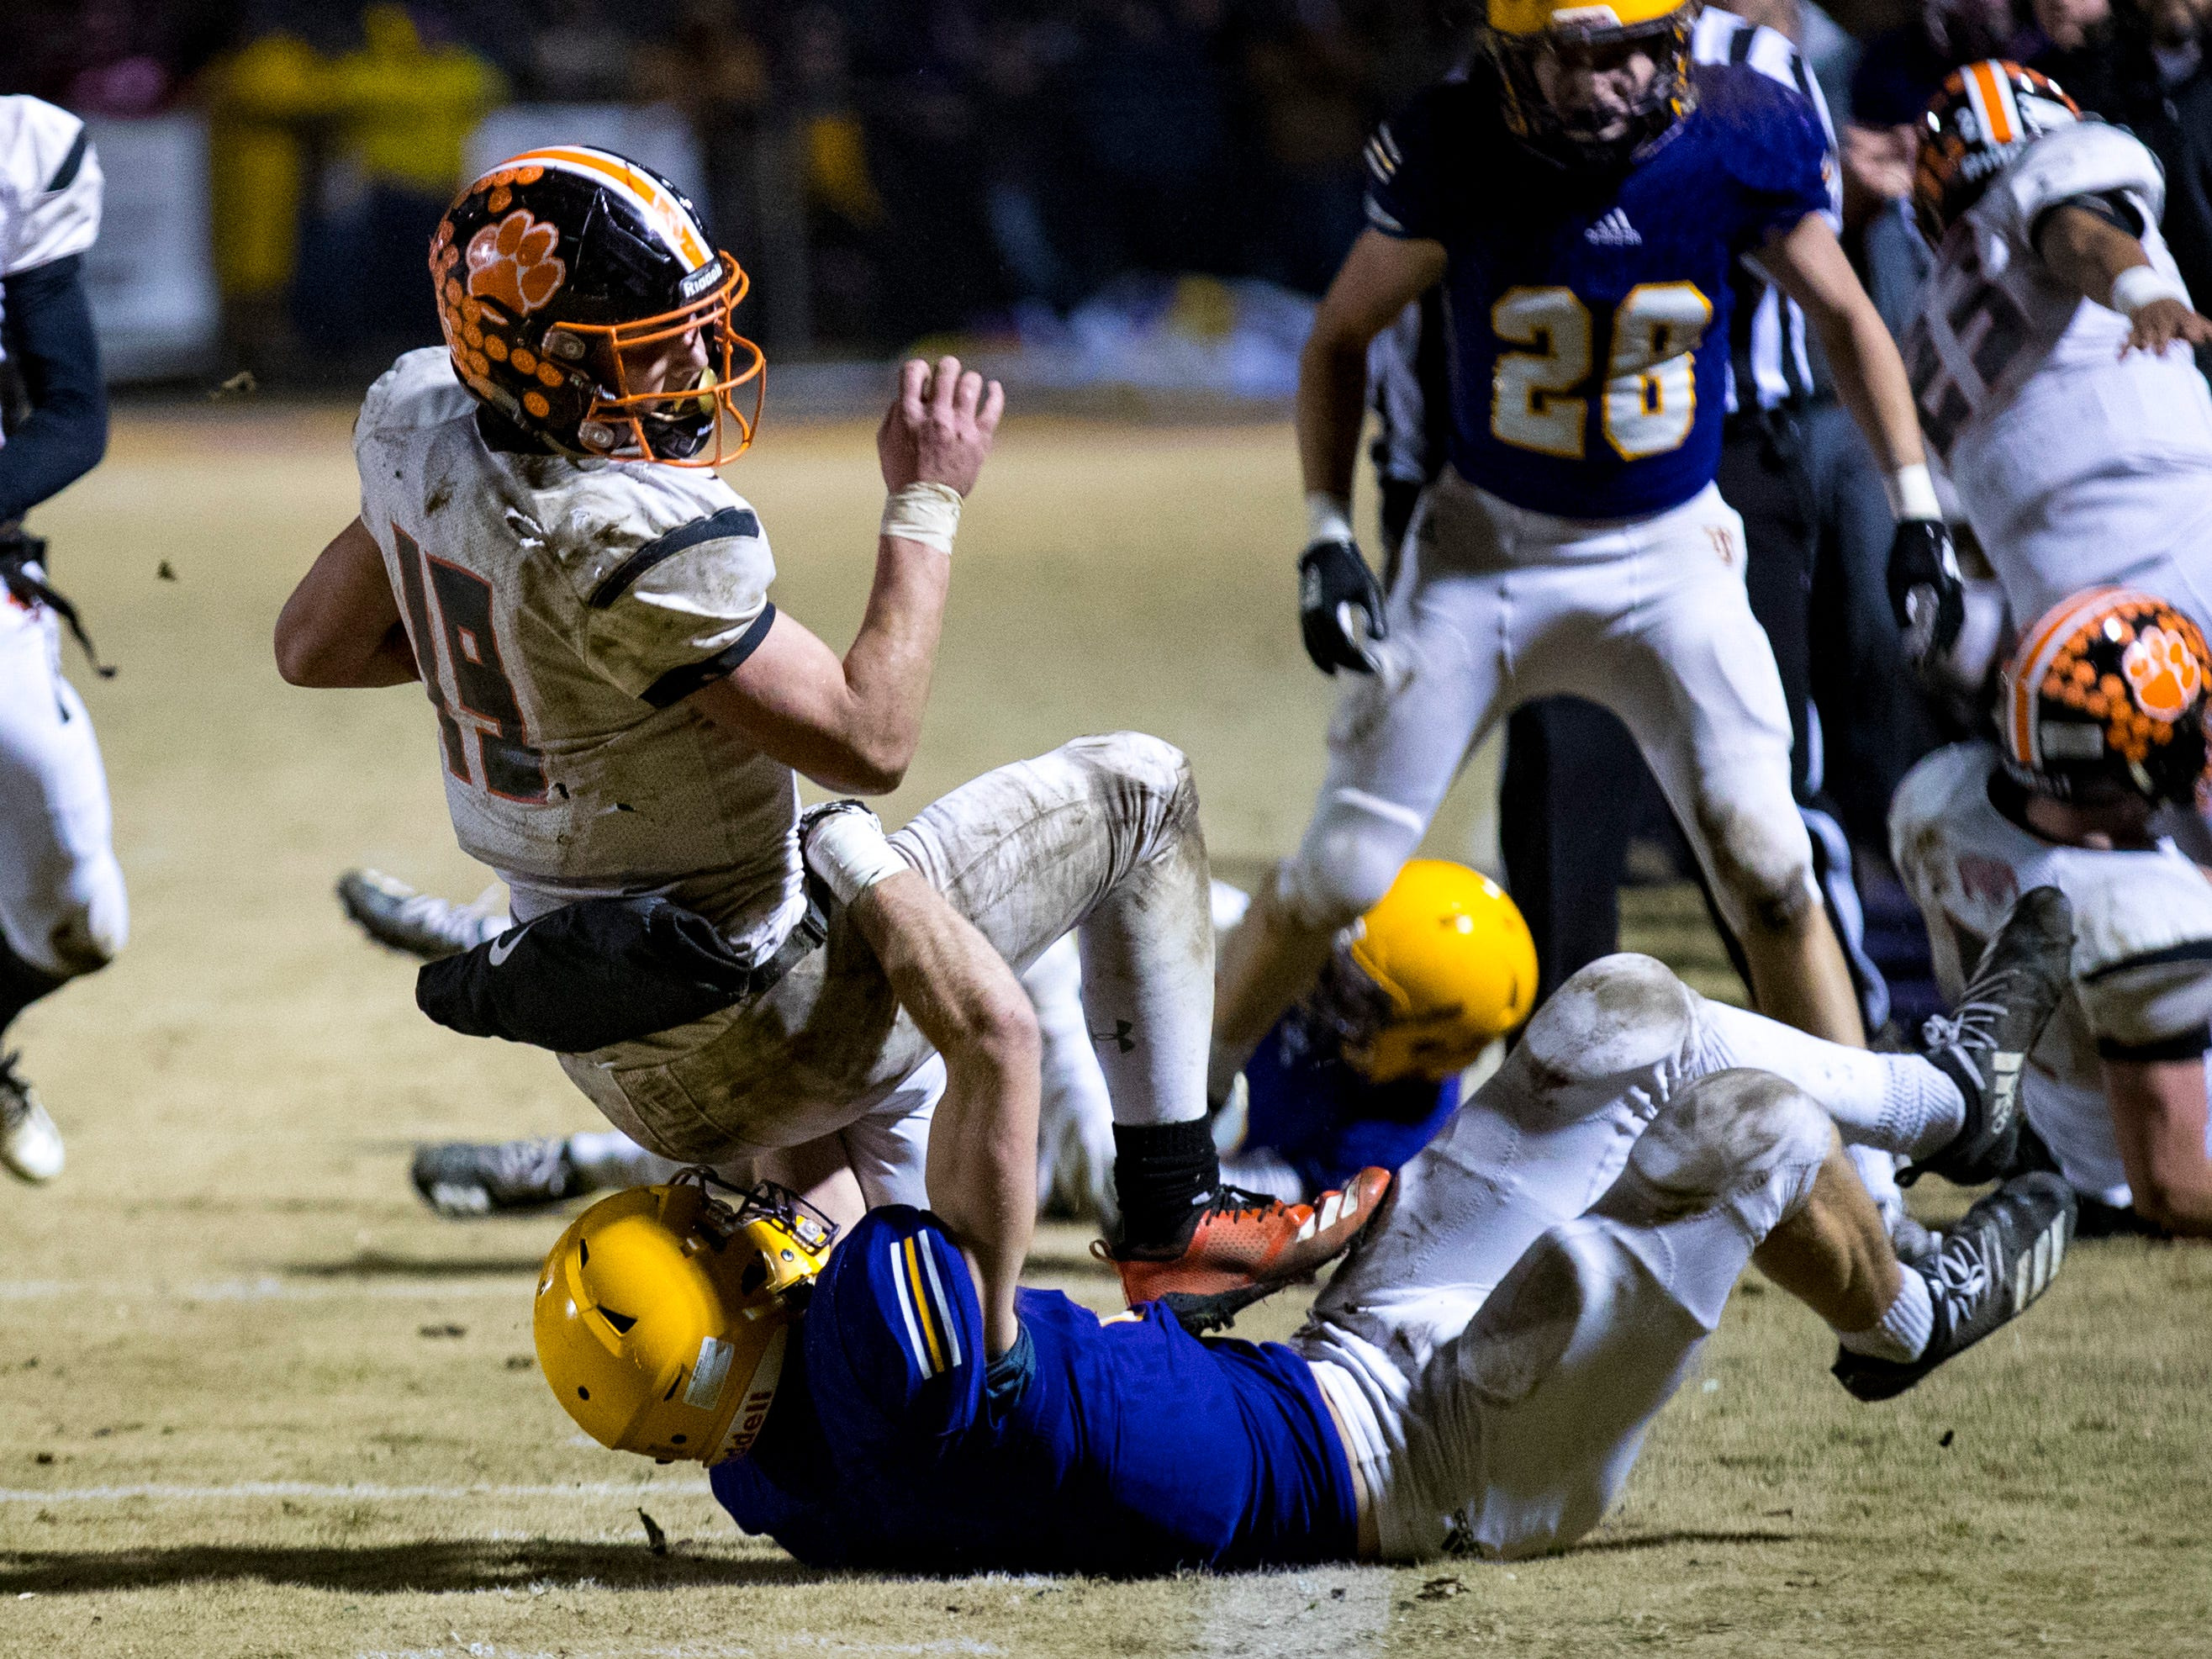 Meigs County's Aaron Swafford (19) is dragged down during Trousdale County's game against Meigs County at Jim Satterfield Stadium in Hartsville on Friday, Nov. 23, 2018.